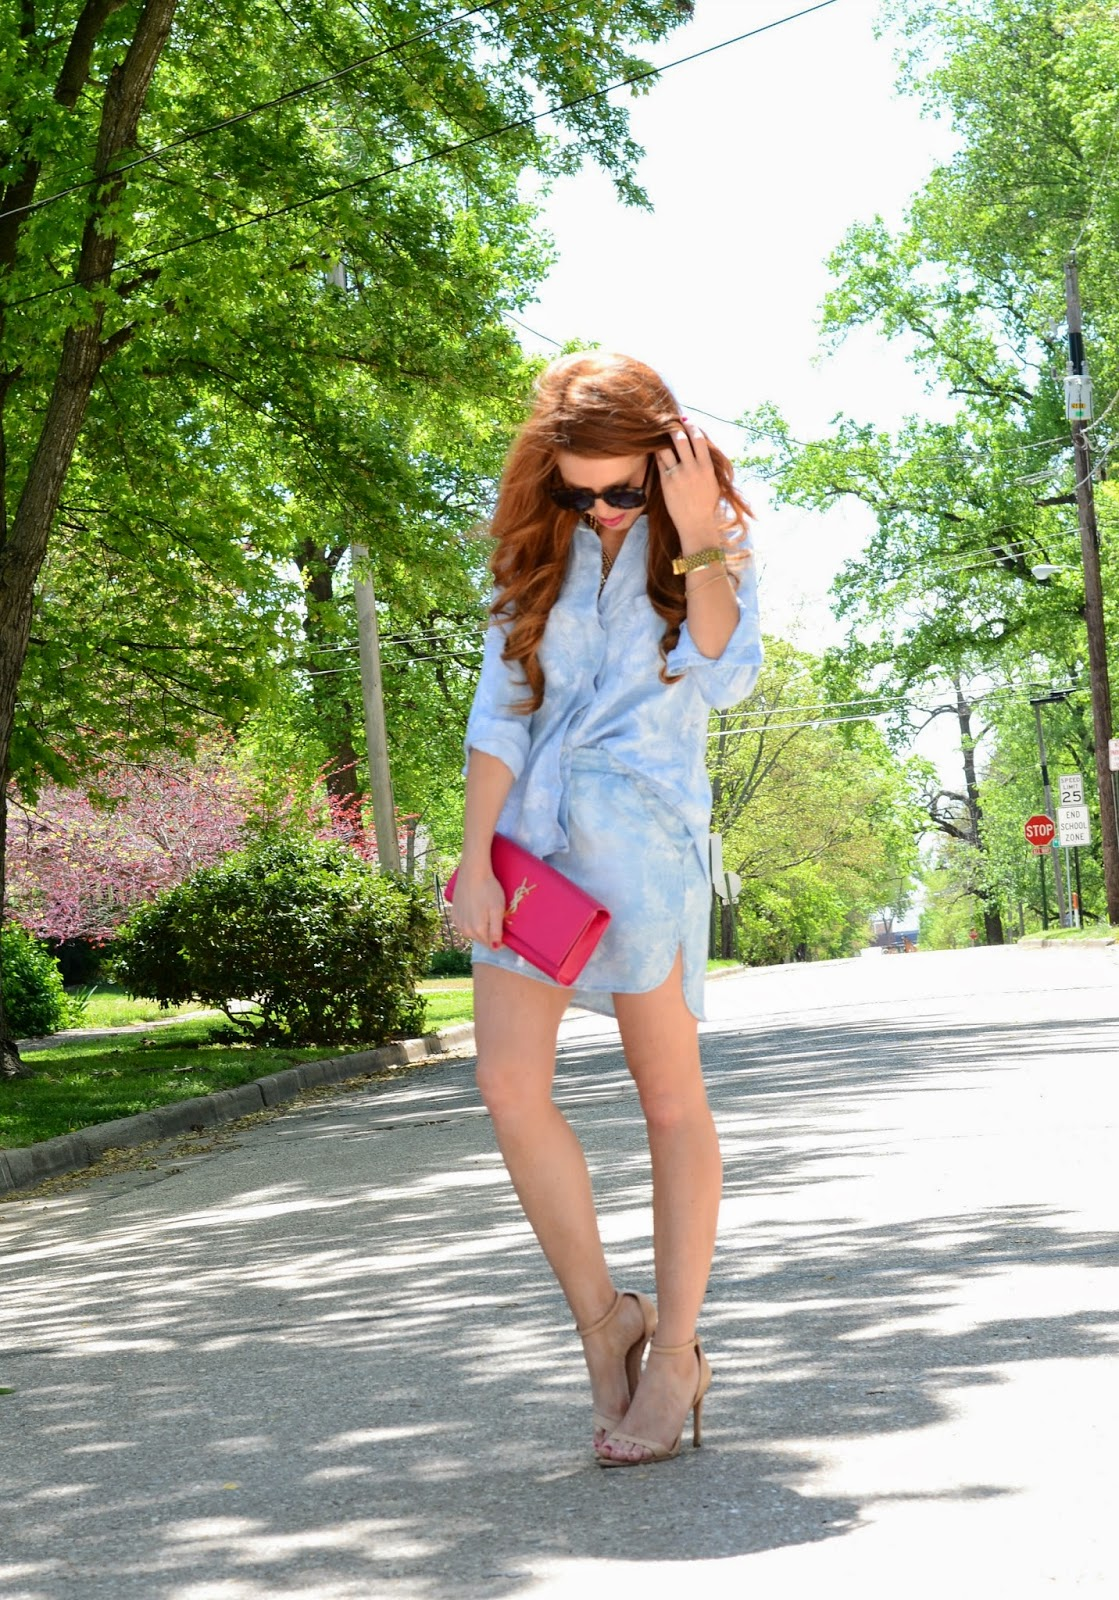 palm leaf top and pink clutch